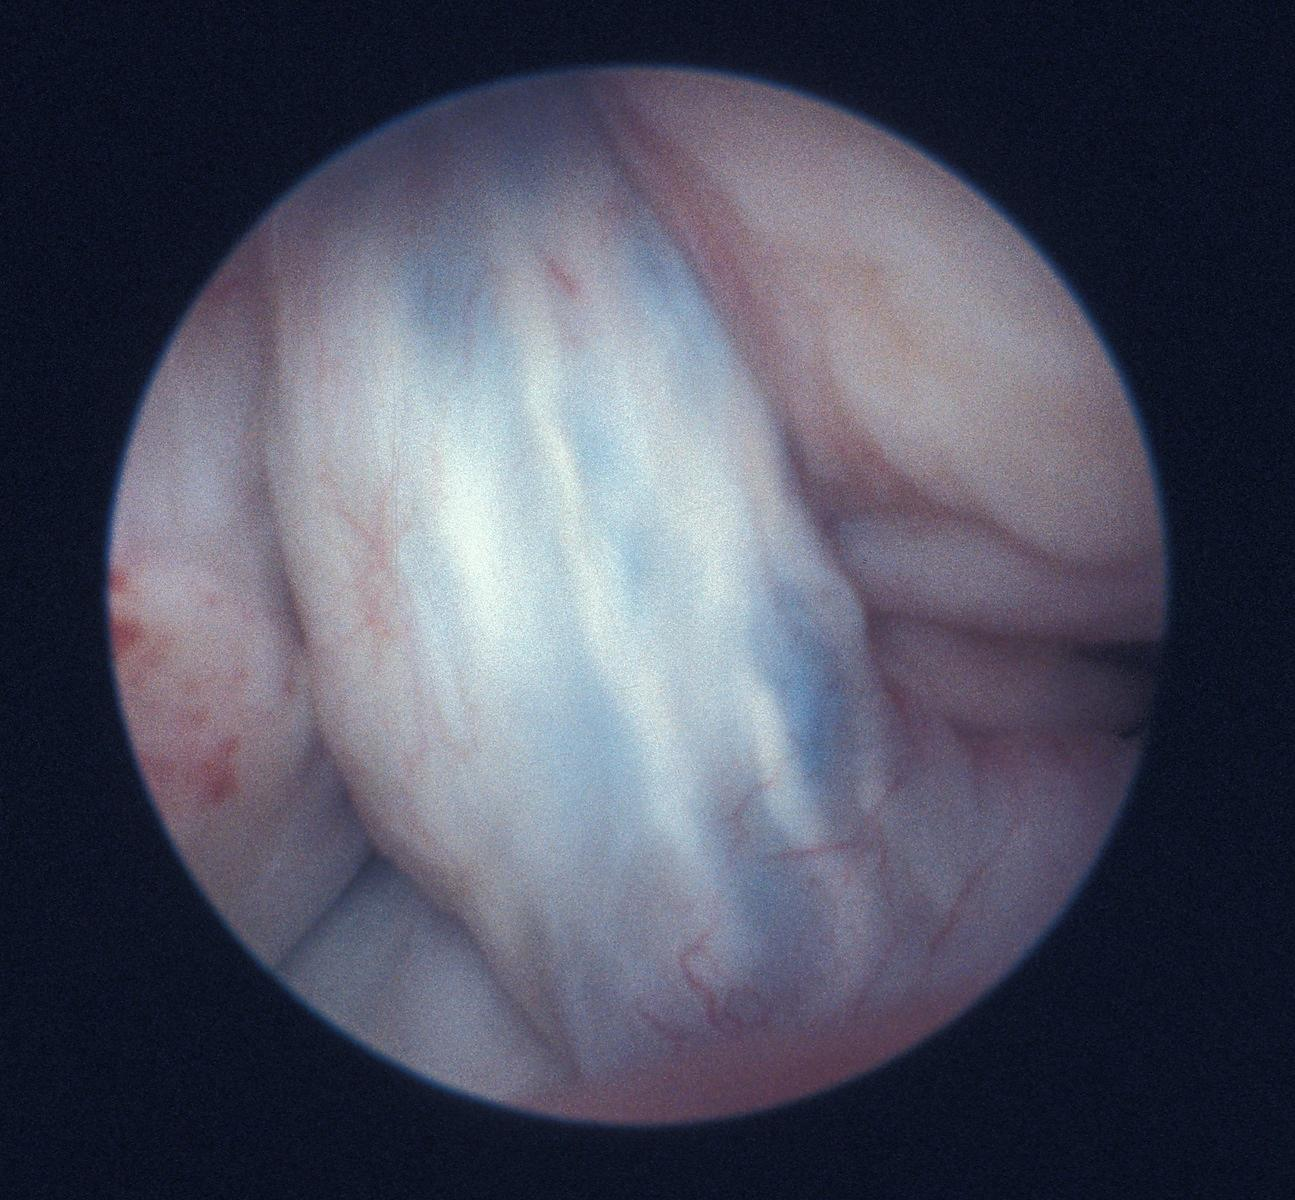 View of the intercondylar notch following repair to anterior cruciate ligament with Surgicraft ABC carbon fibre polyester lig...